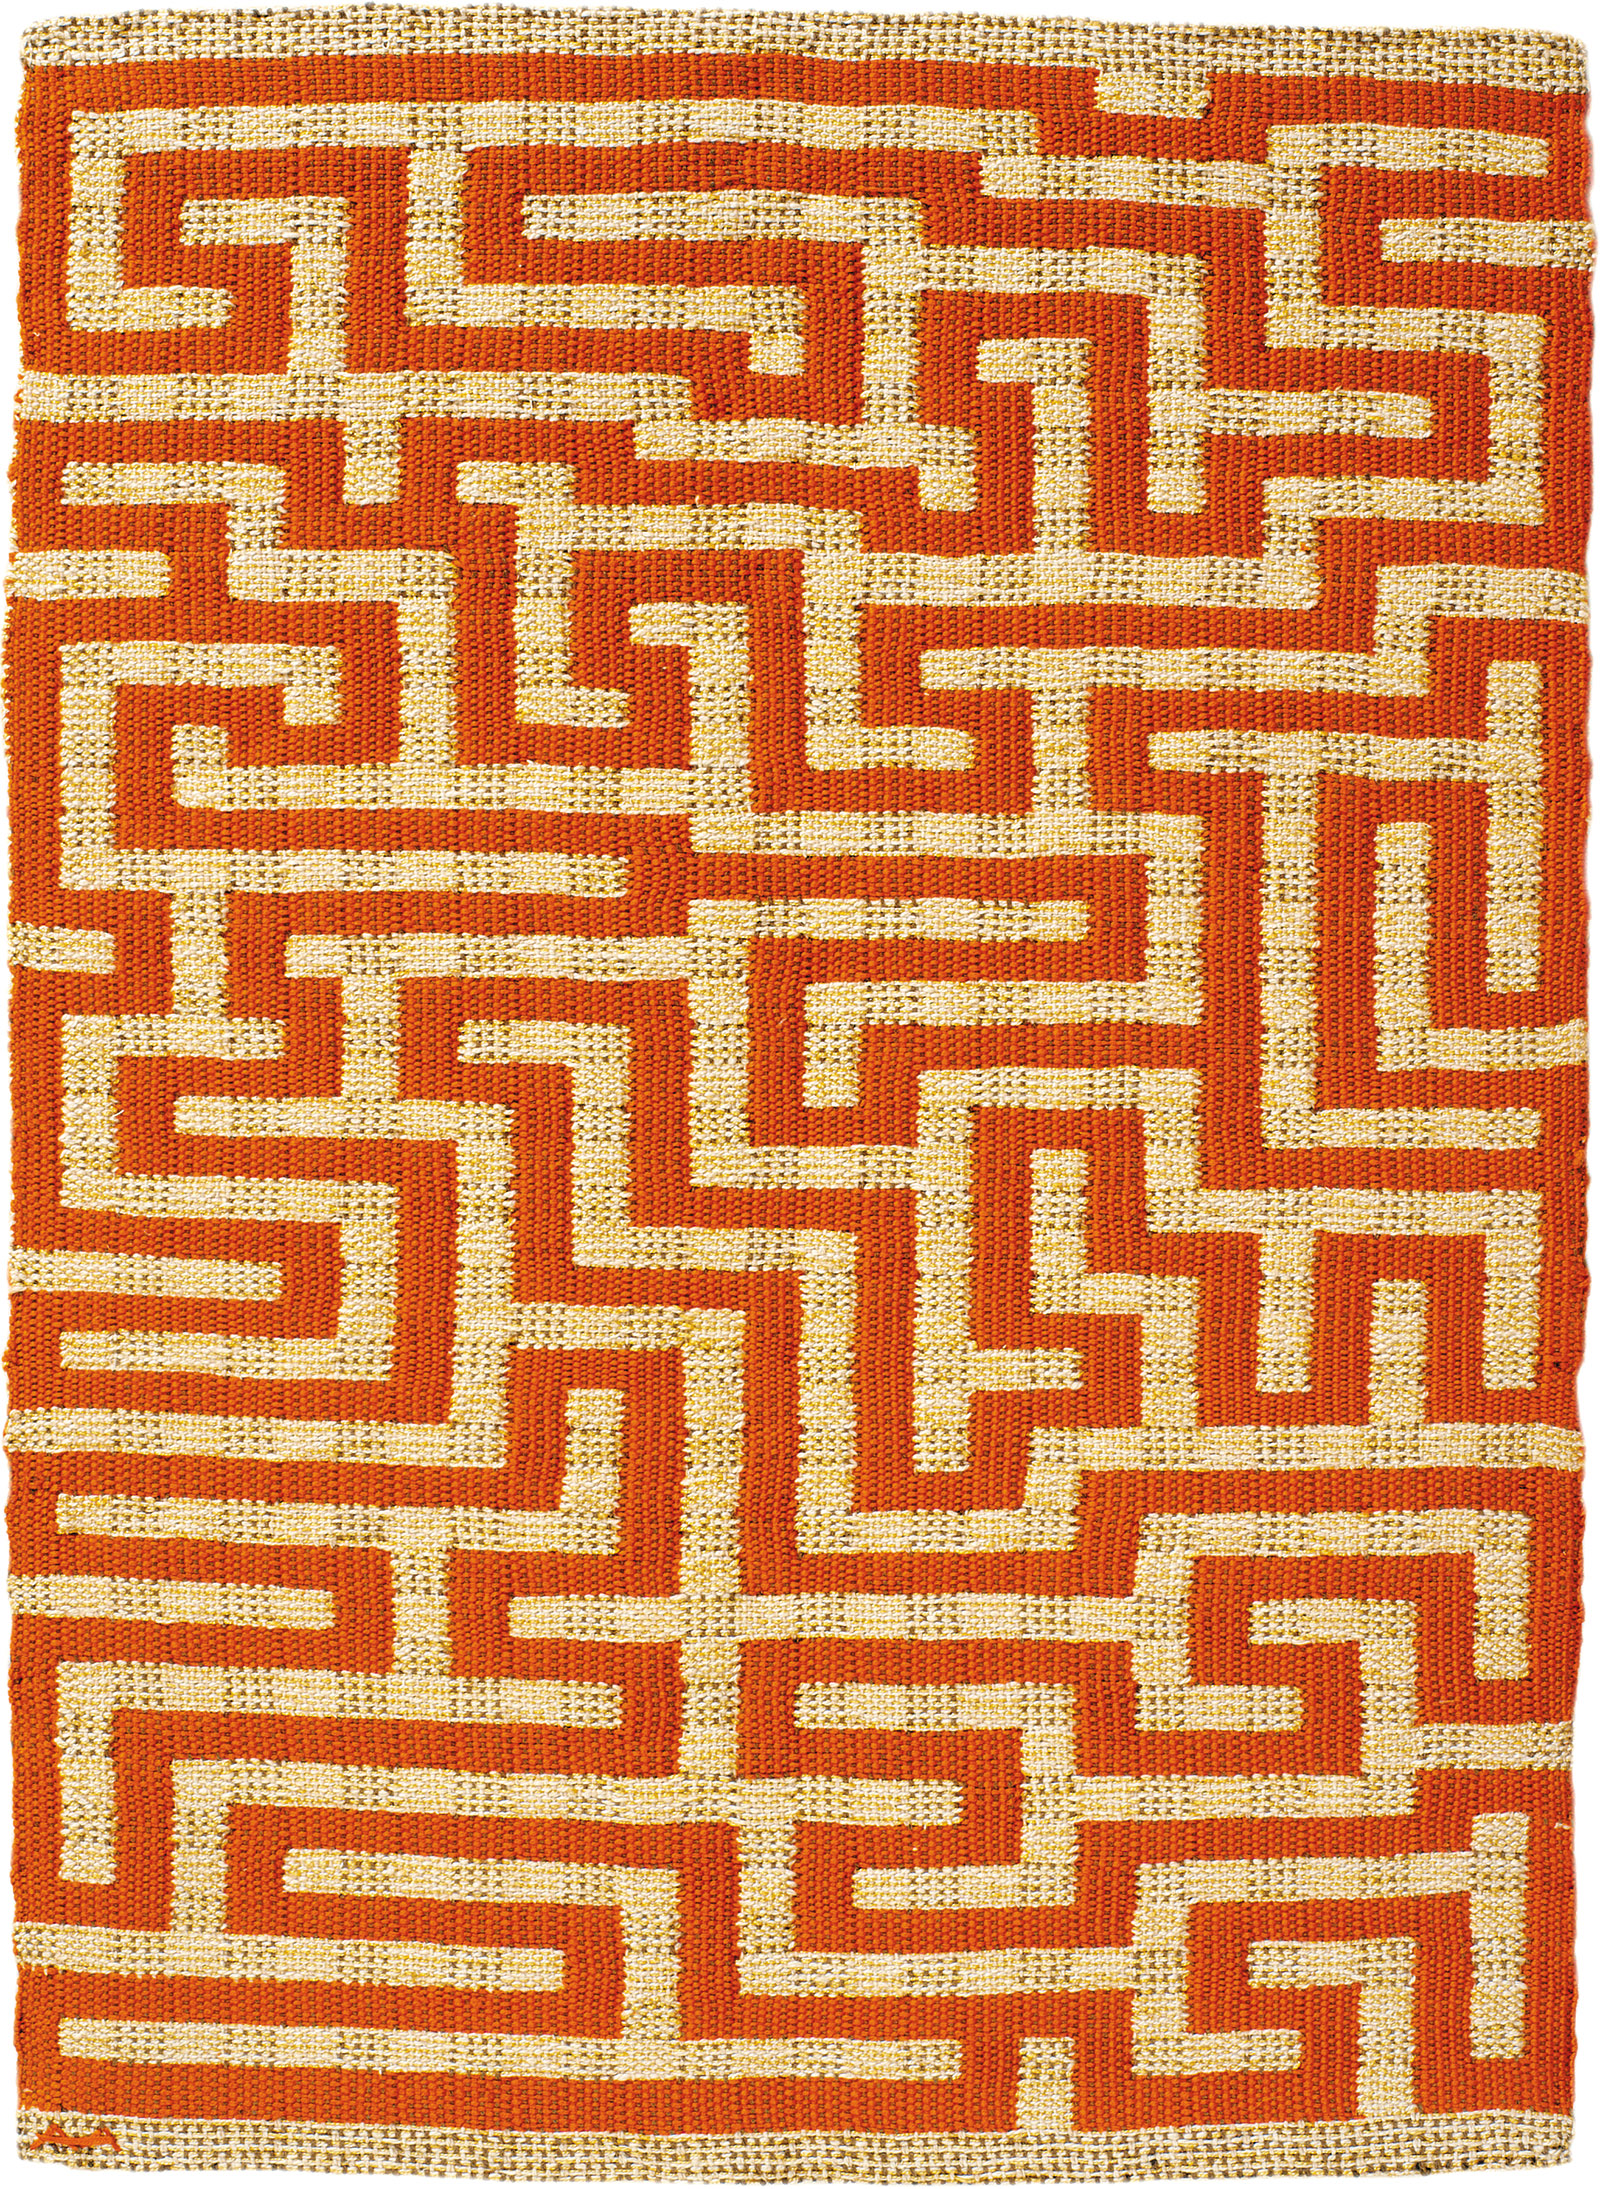 Red Meander, 1954, by Anni Albers